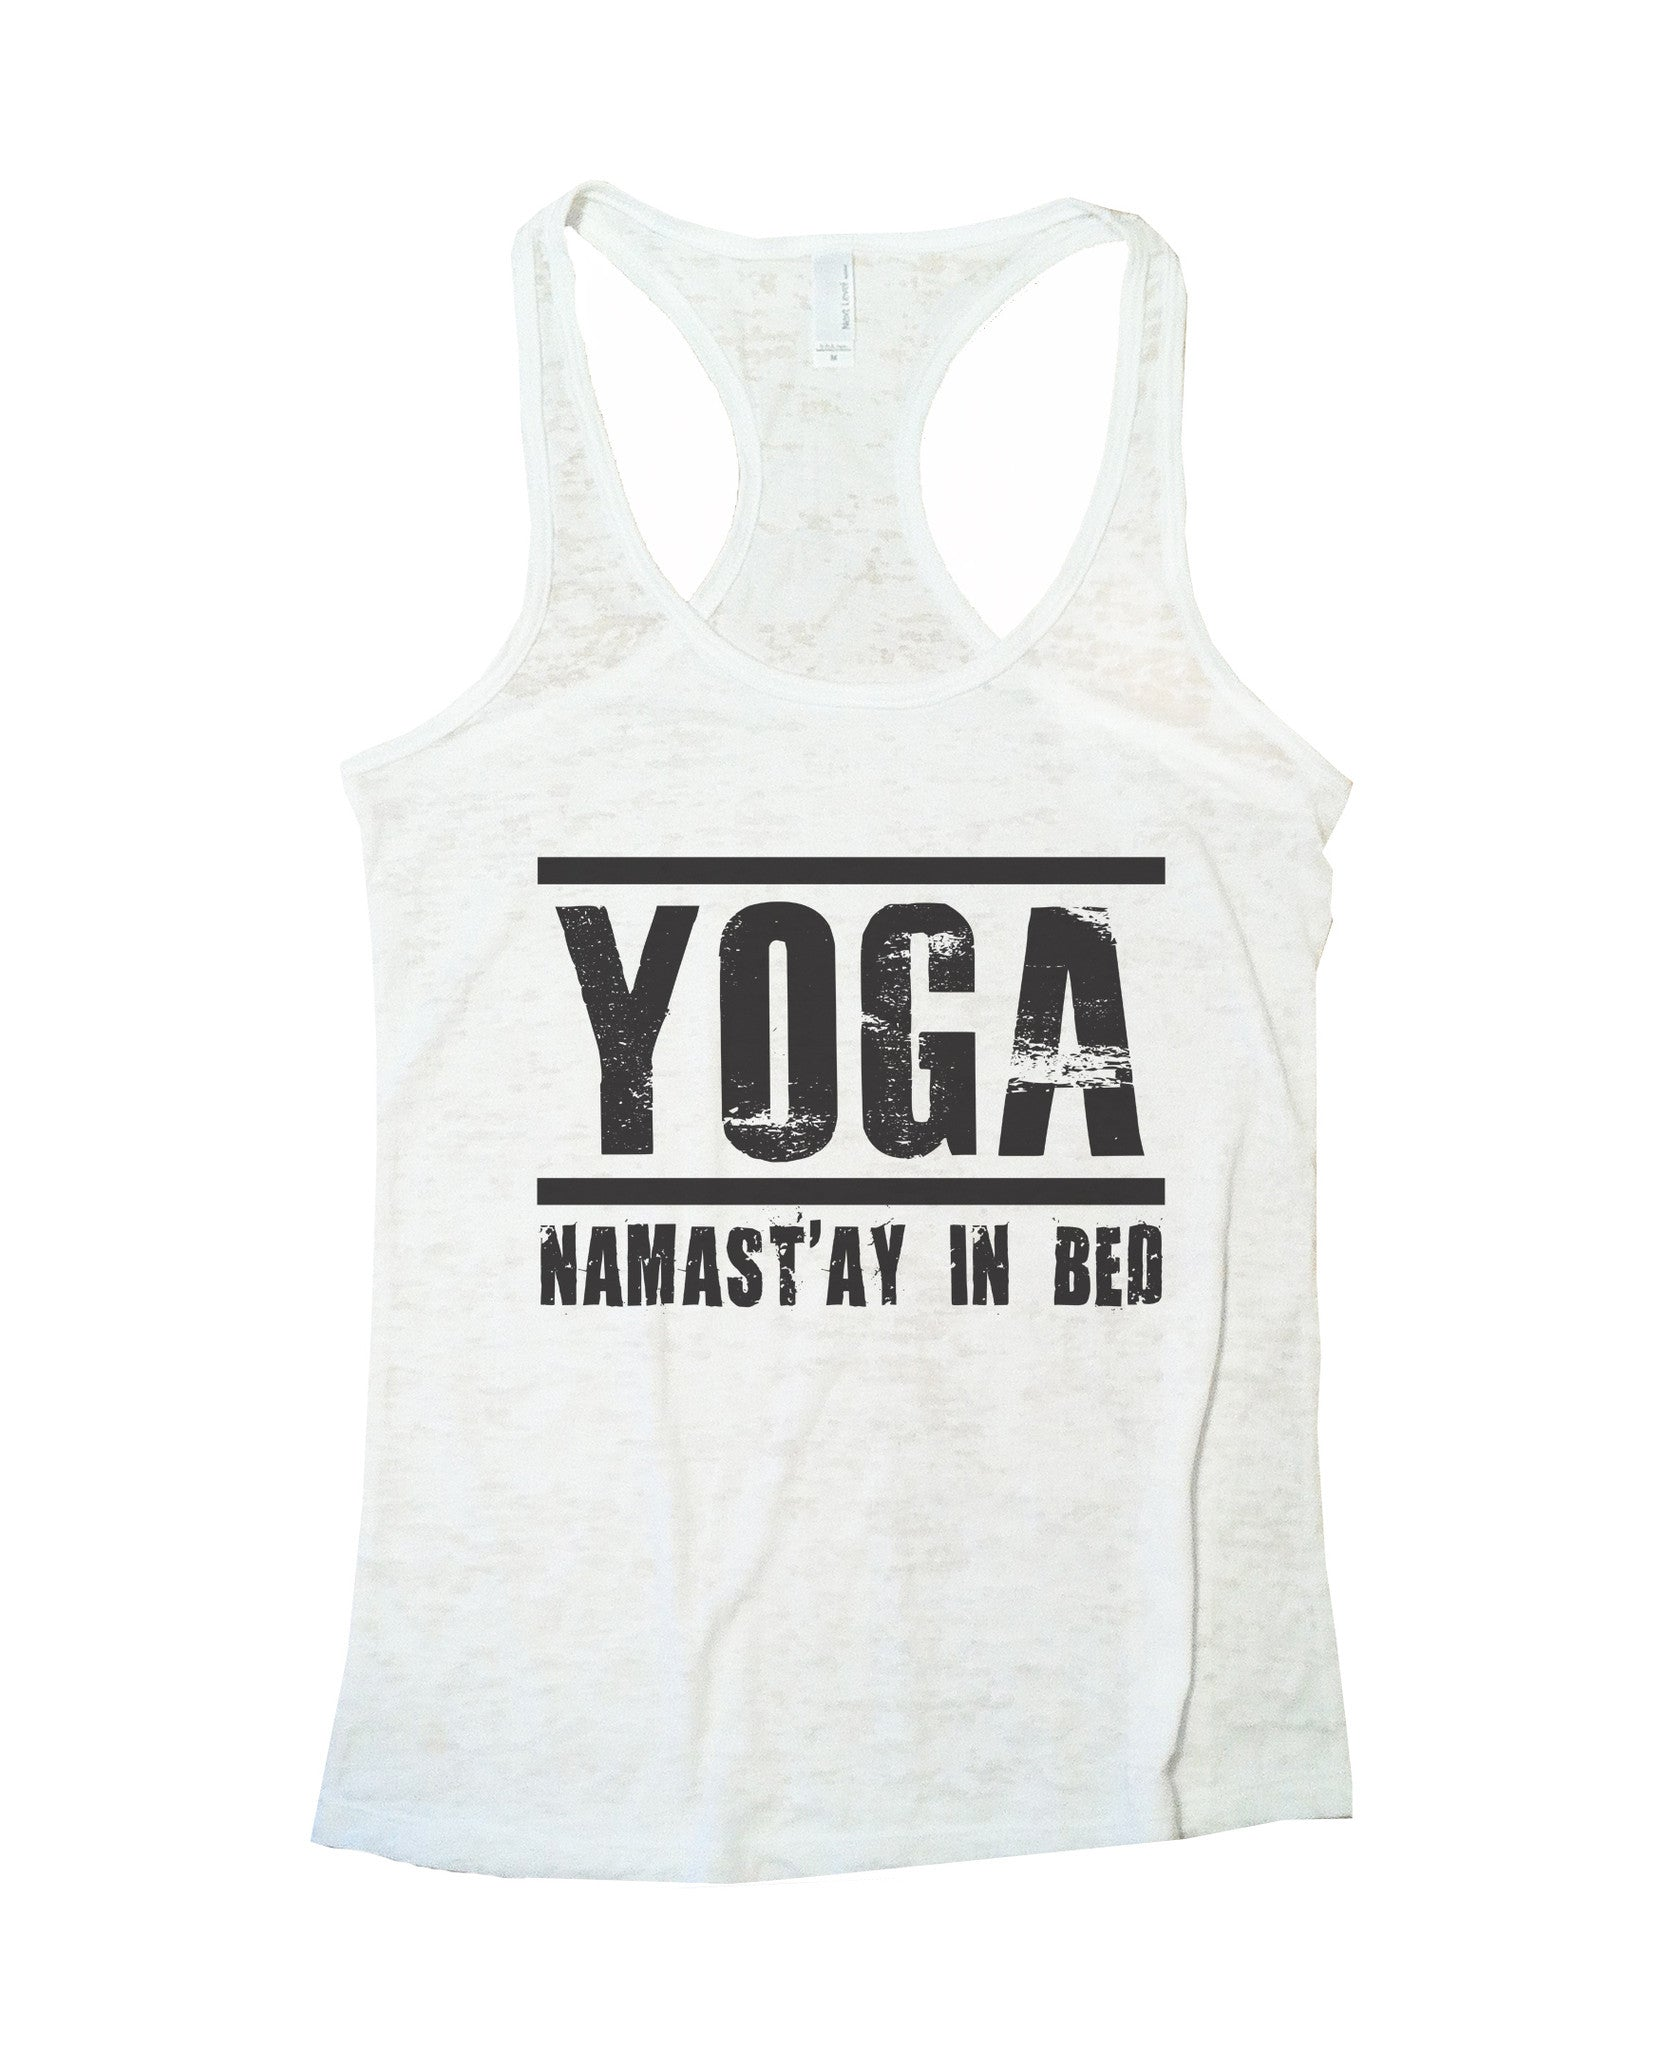 Yoga Namast'ay In Bed Burnout Tank Top By BurnoutTankTops.com - 649 - Funny Shirts Tank Tops Burnouts and Triblends  - 5